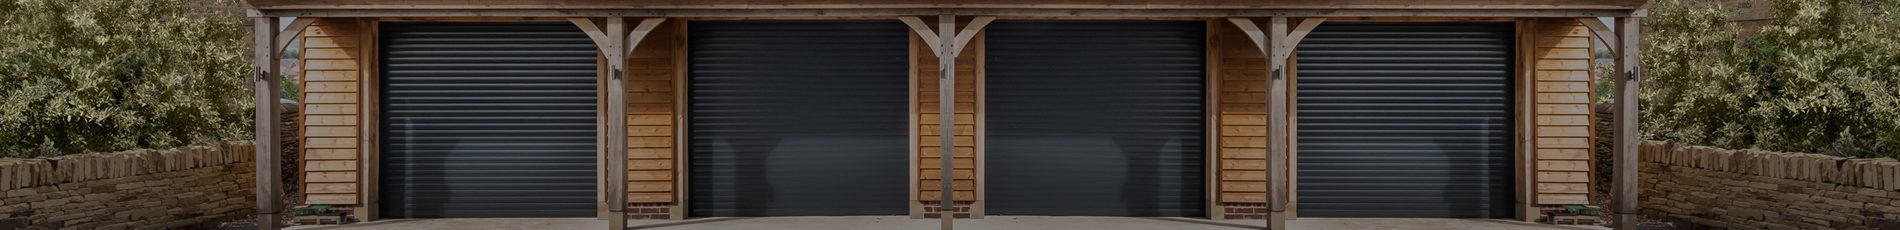 Before And After: Garolla Garage Door Edition